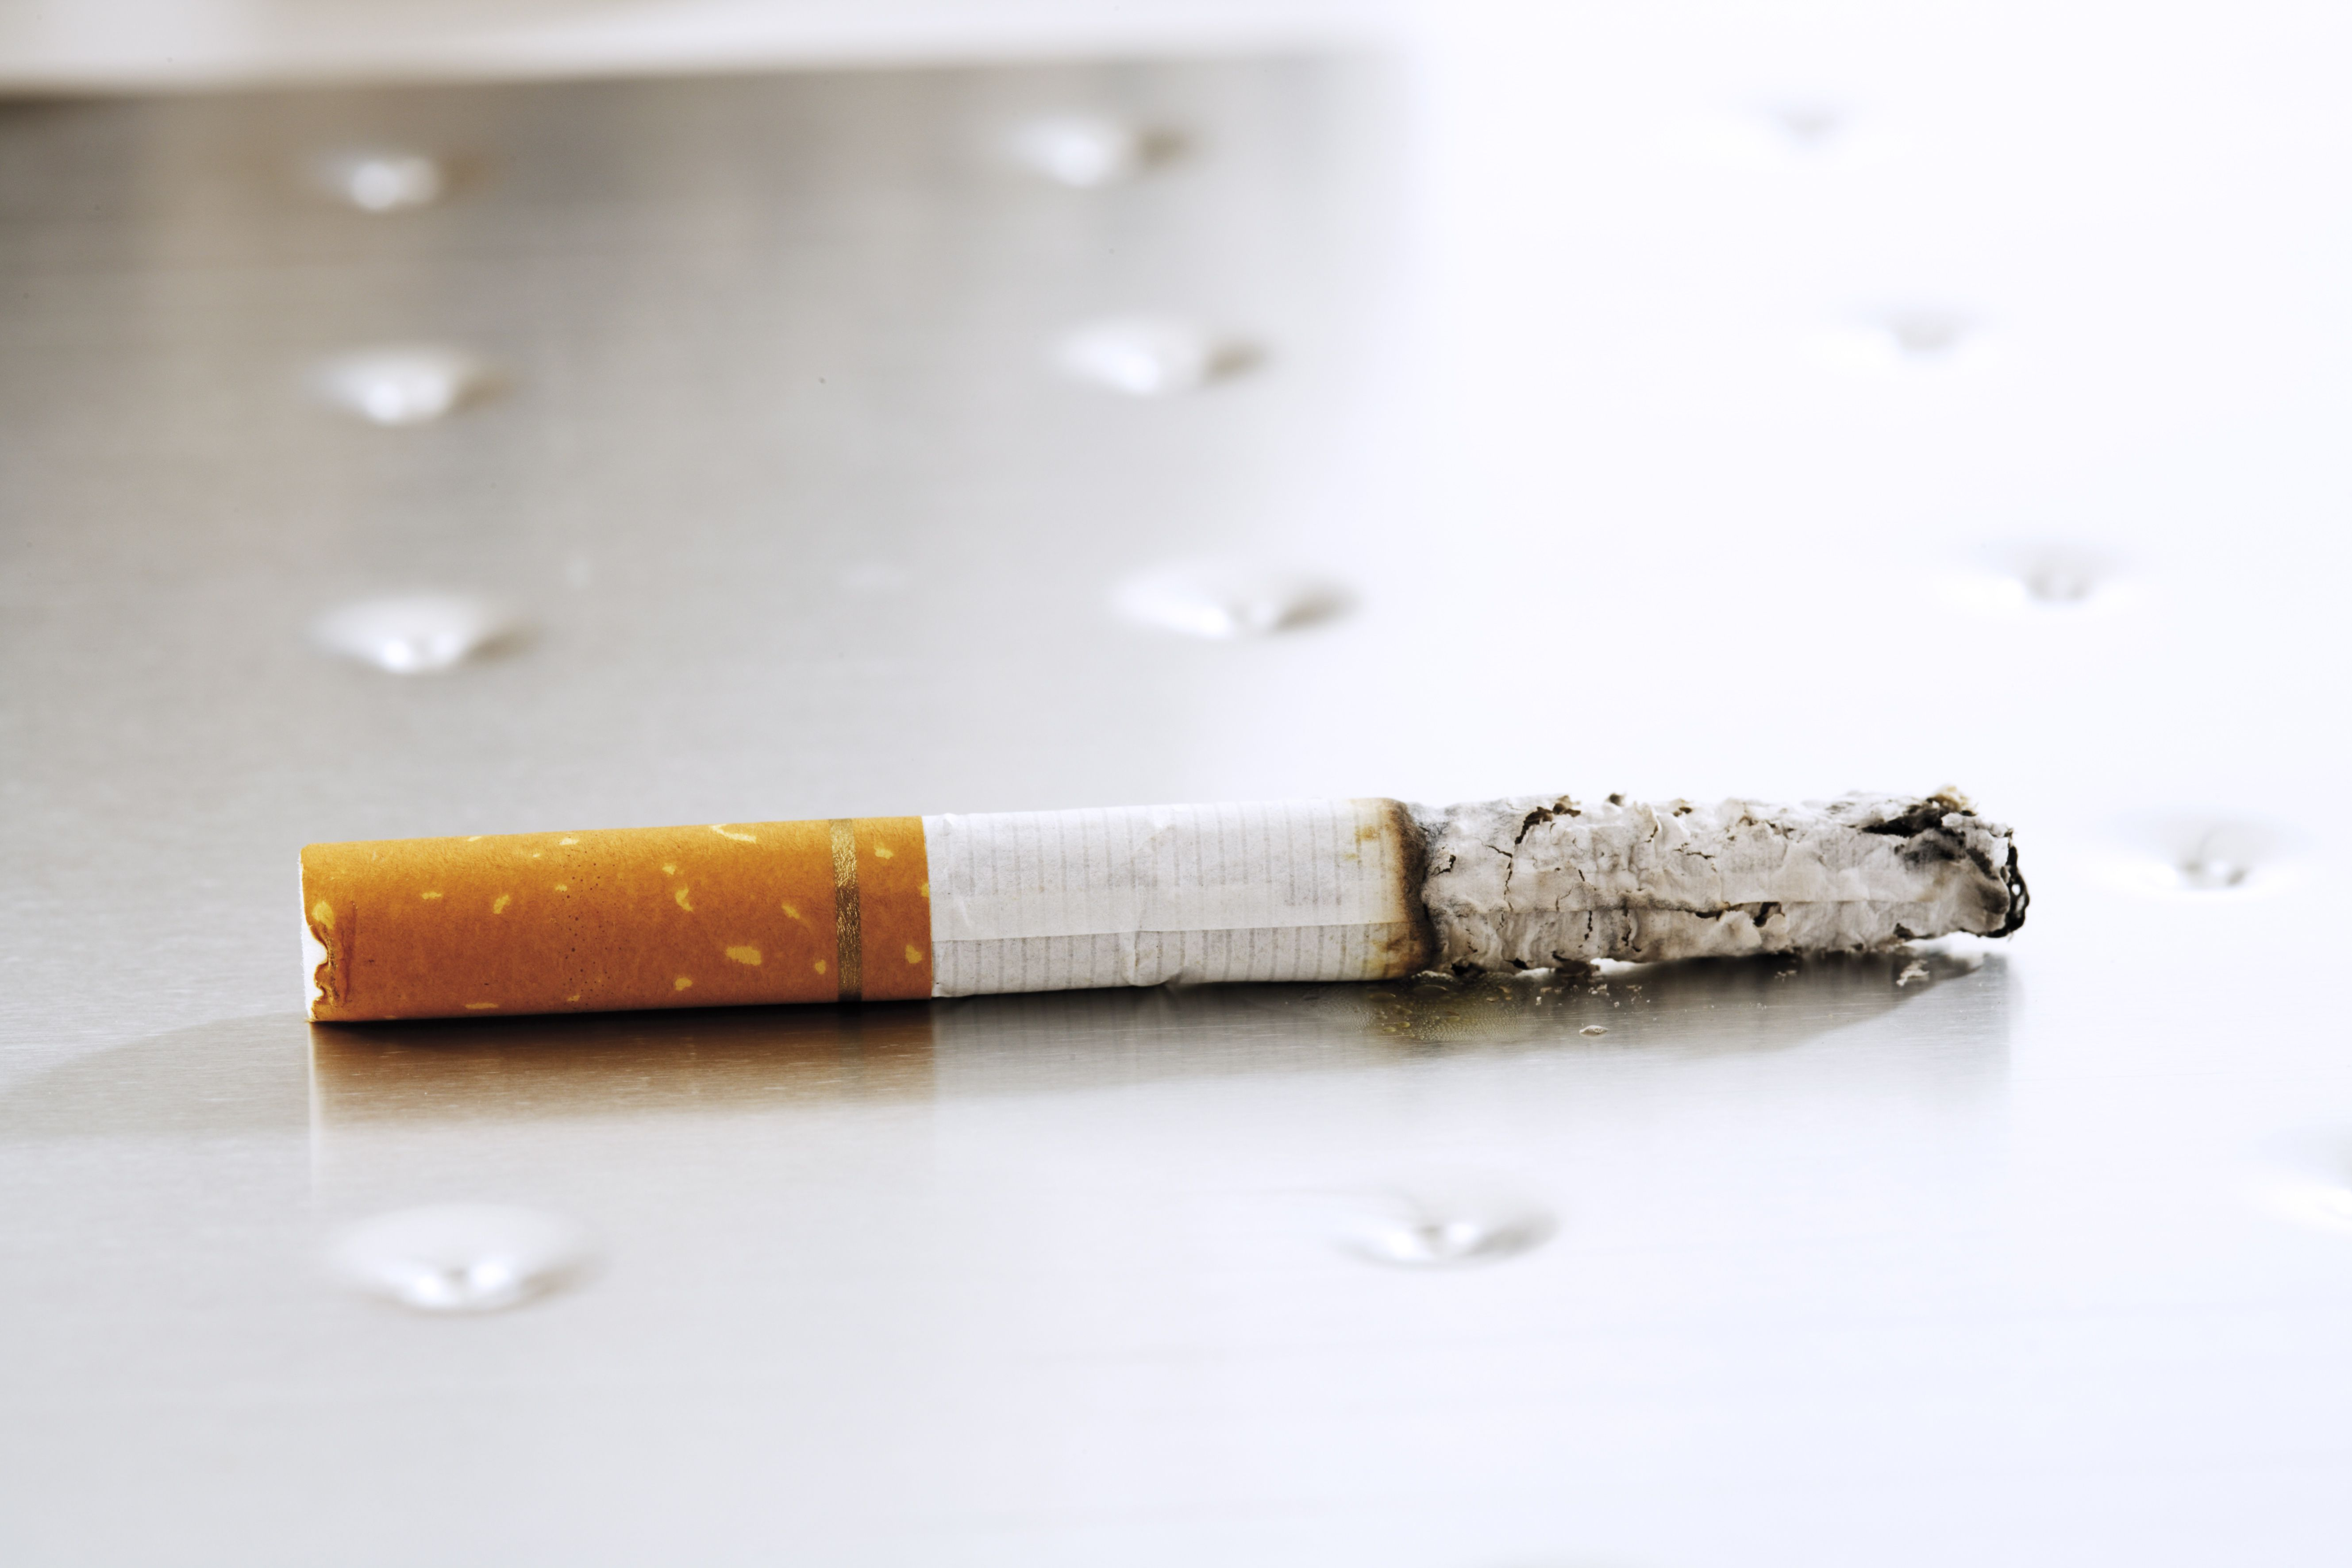 one cigarette Considering buying an electronic cigarette michigan-based e-cig supplier, a clean cigarette, will show you the benefits of switching away from burning tobacco.